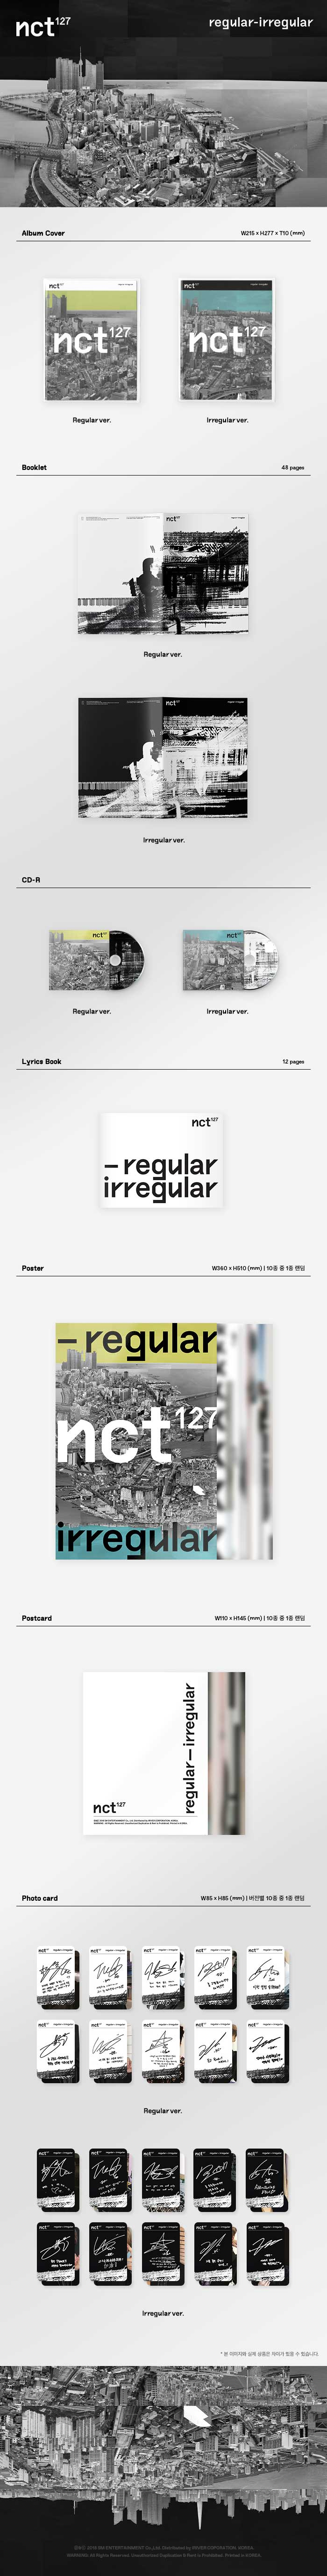 NCT 127 - 1st Regular Album [NCT #127 Regular-Irregular]